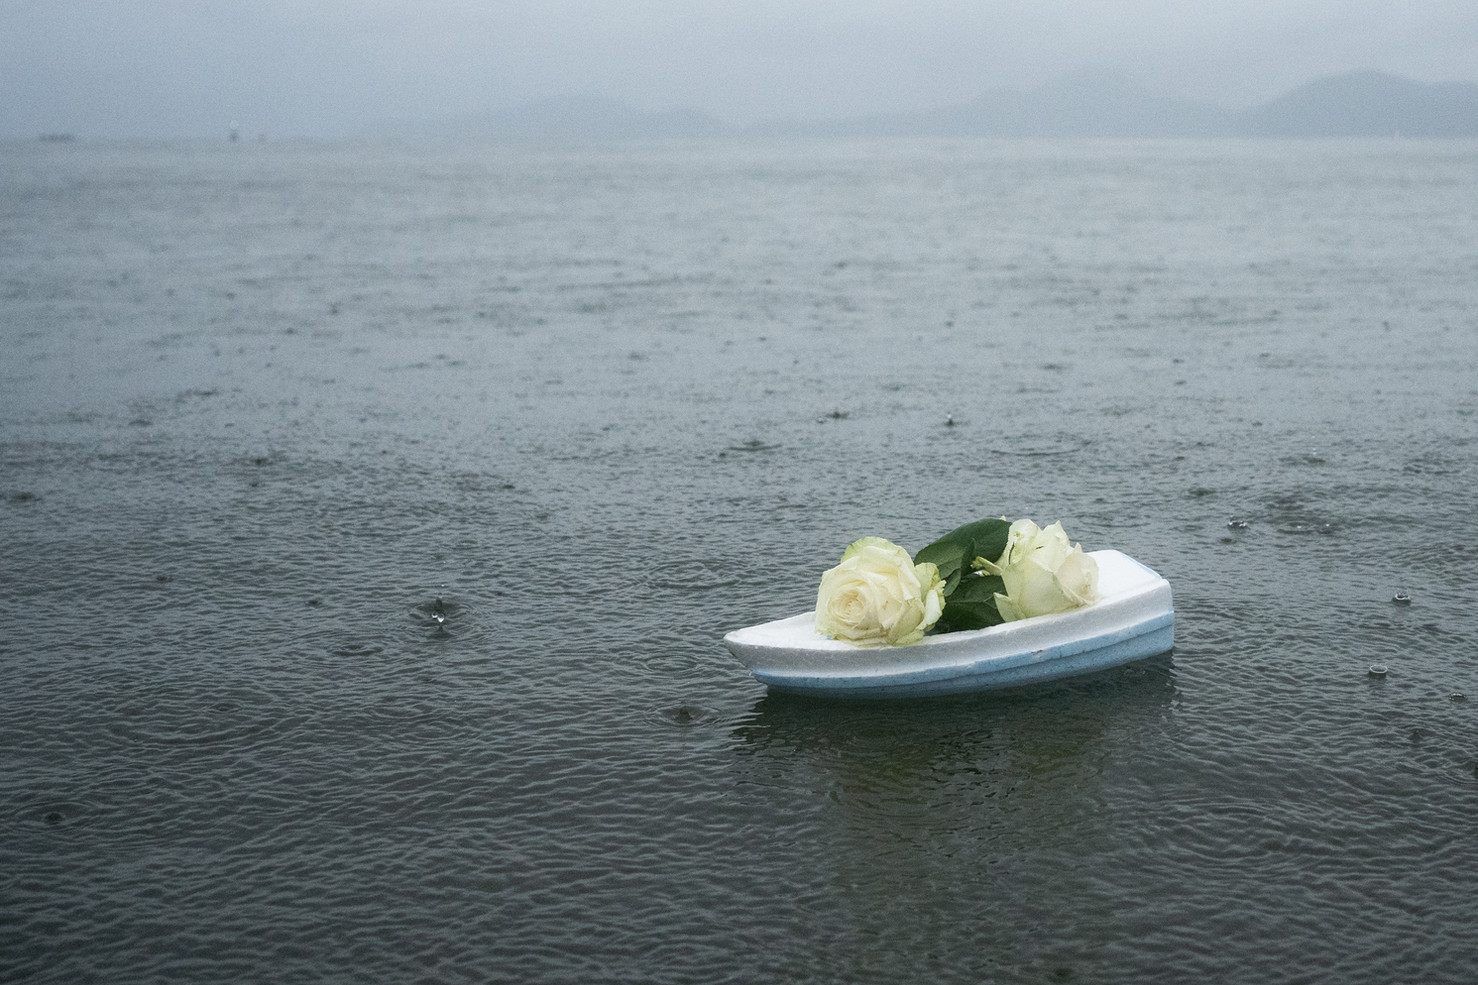 A little styrofoam boat with white roses was seen at sea during Iemanja Day (goddess of the sea) in Santos, February 2, 2020.